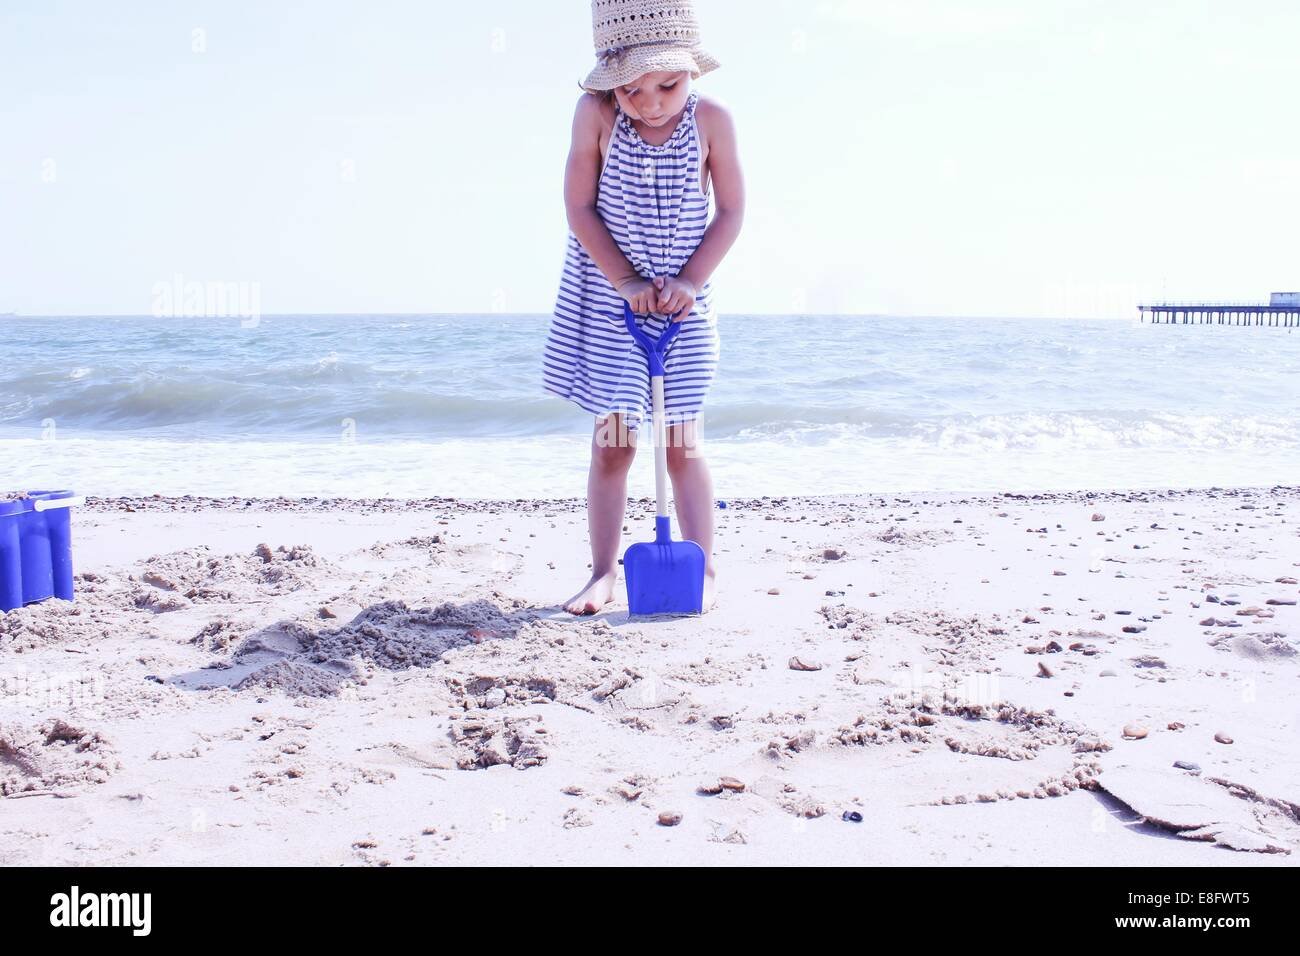 Girl digging on the beach - Stock Image